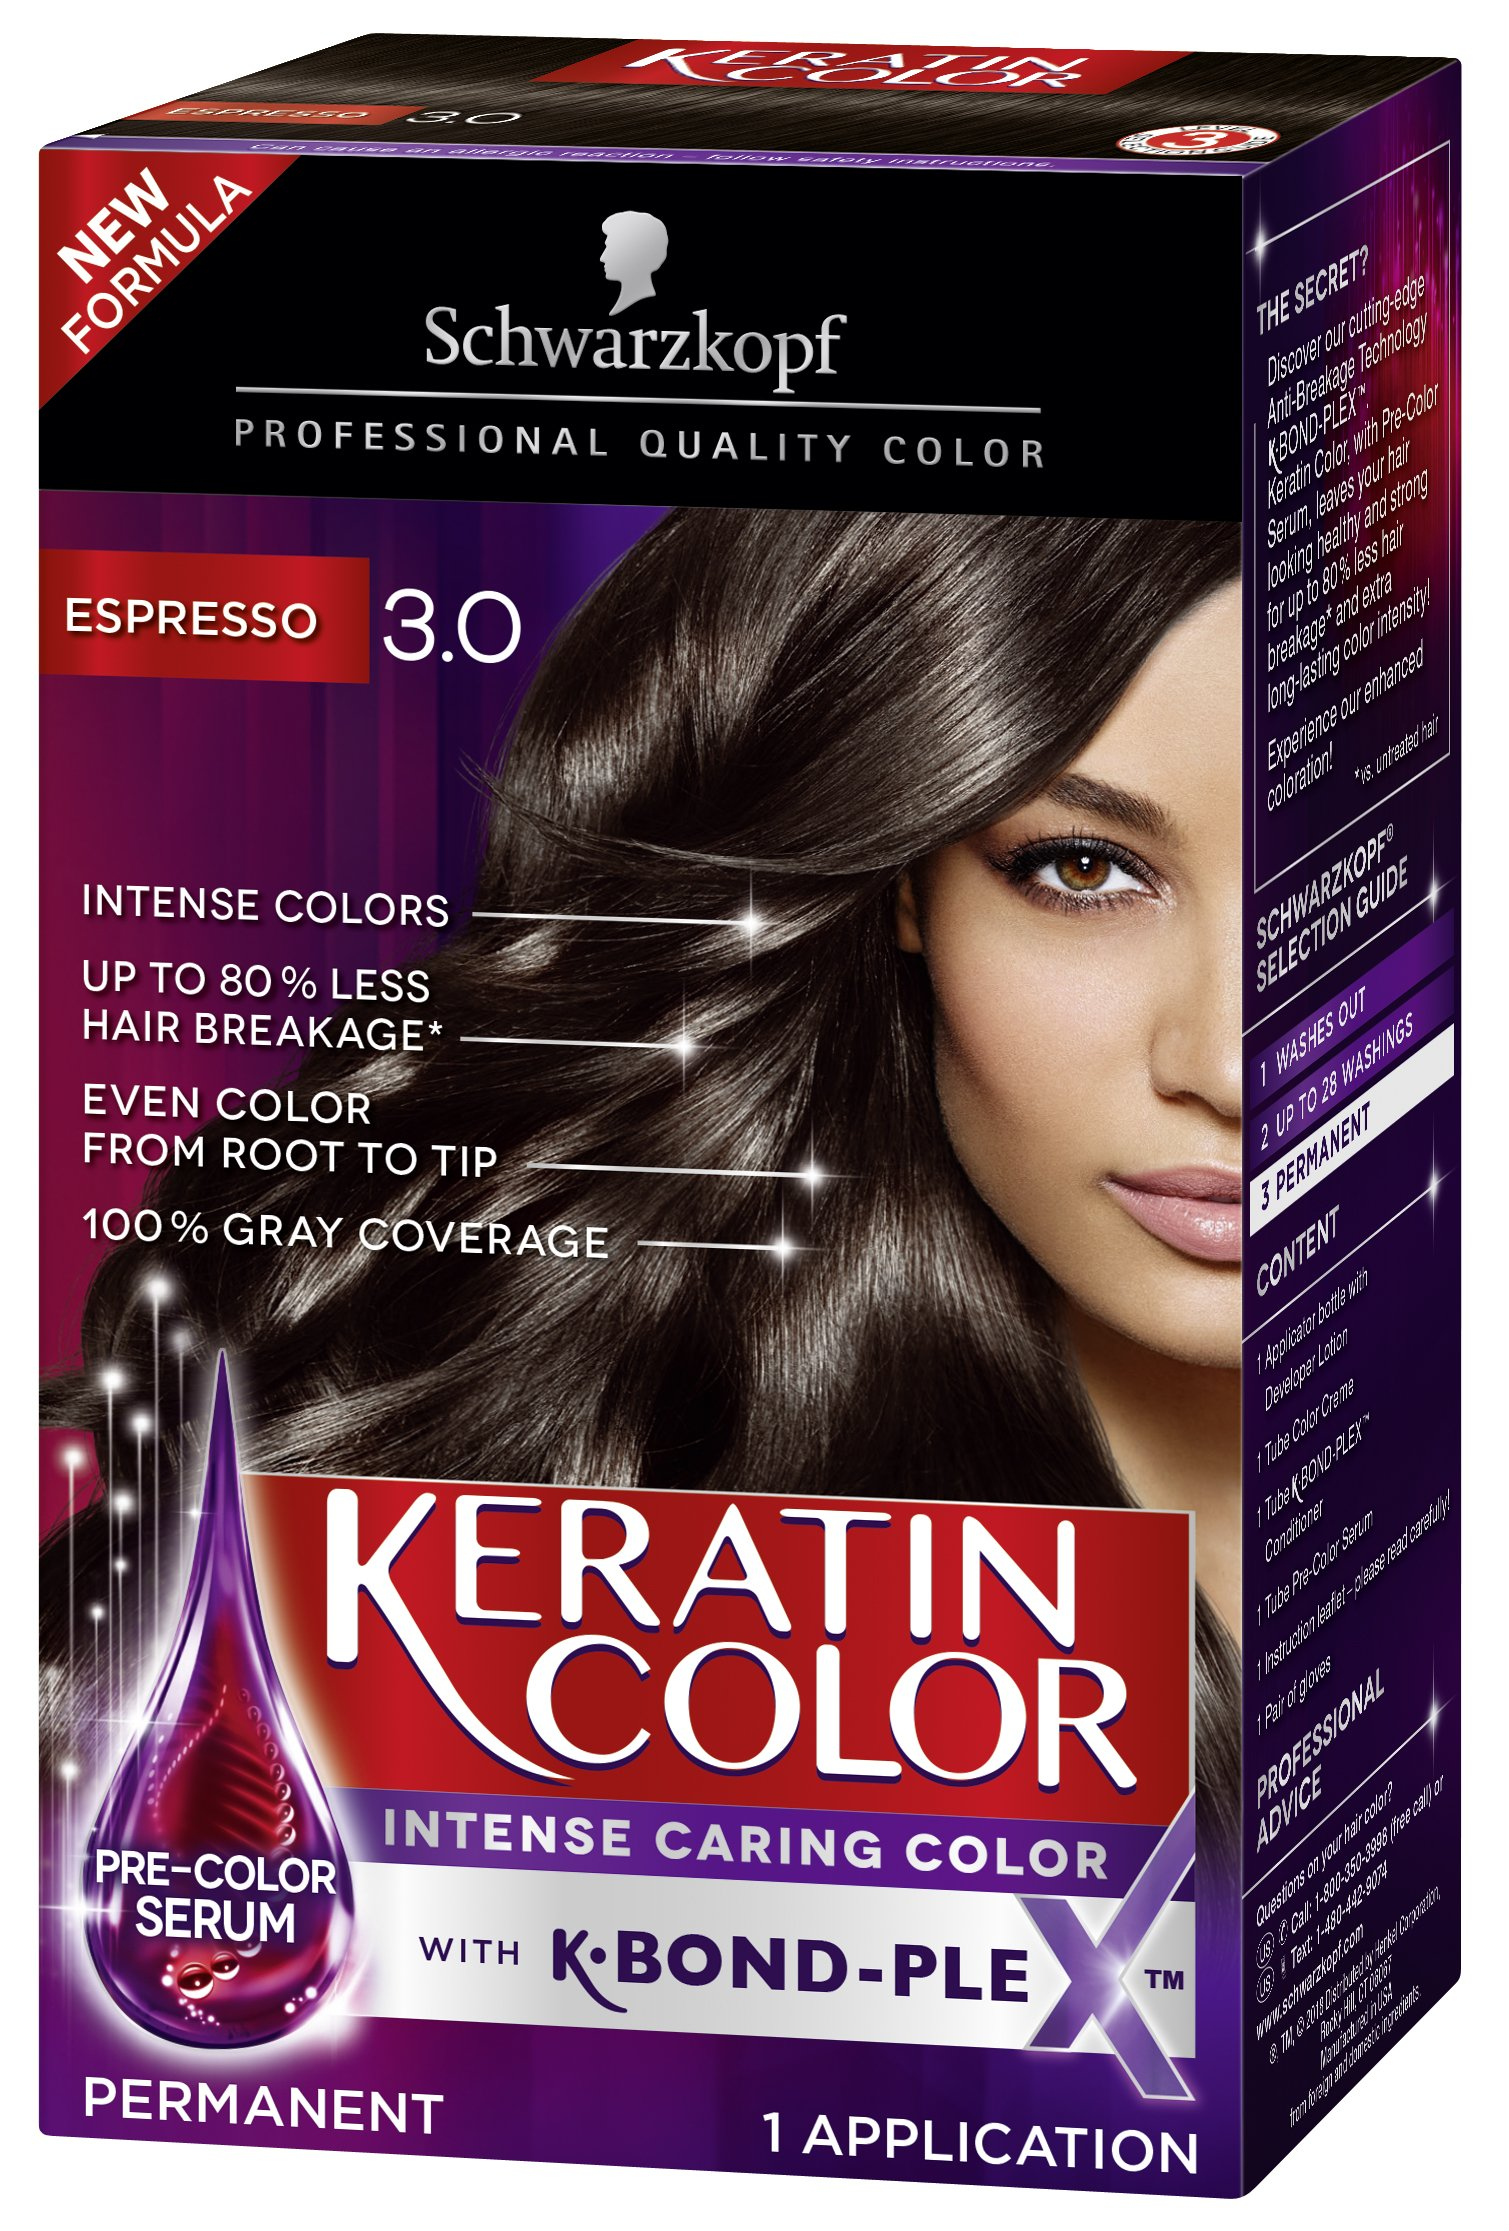 Cappuccino hair color - is it simple? 98